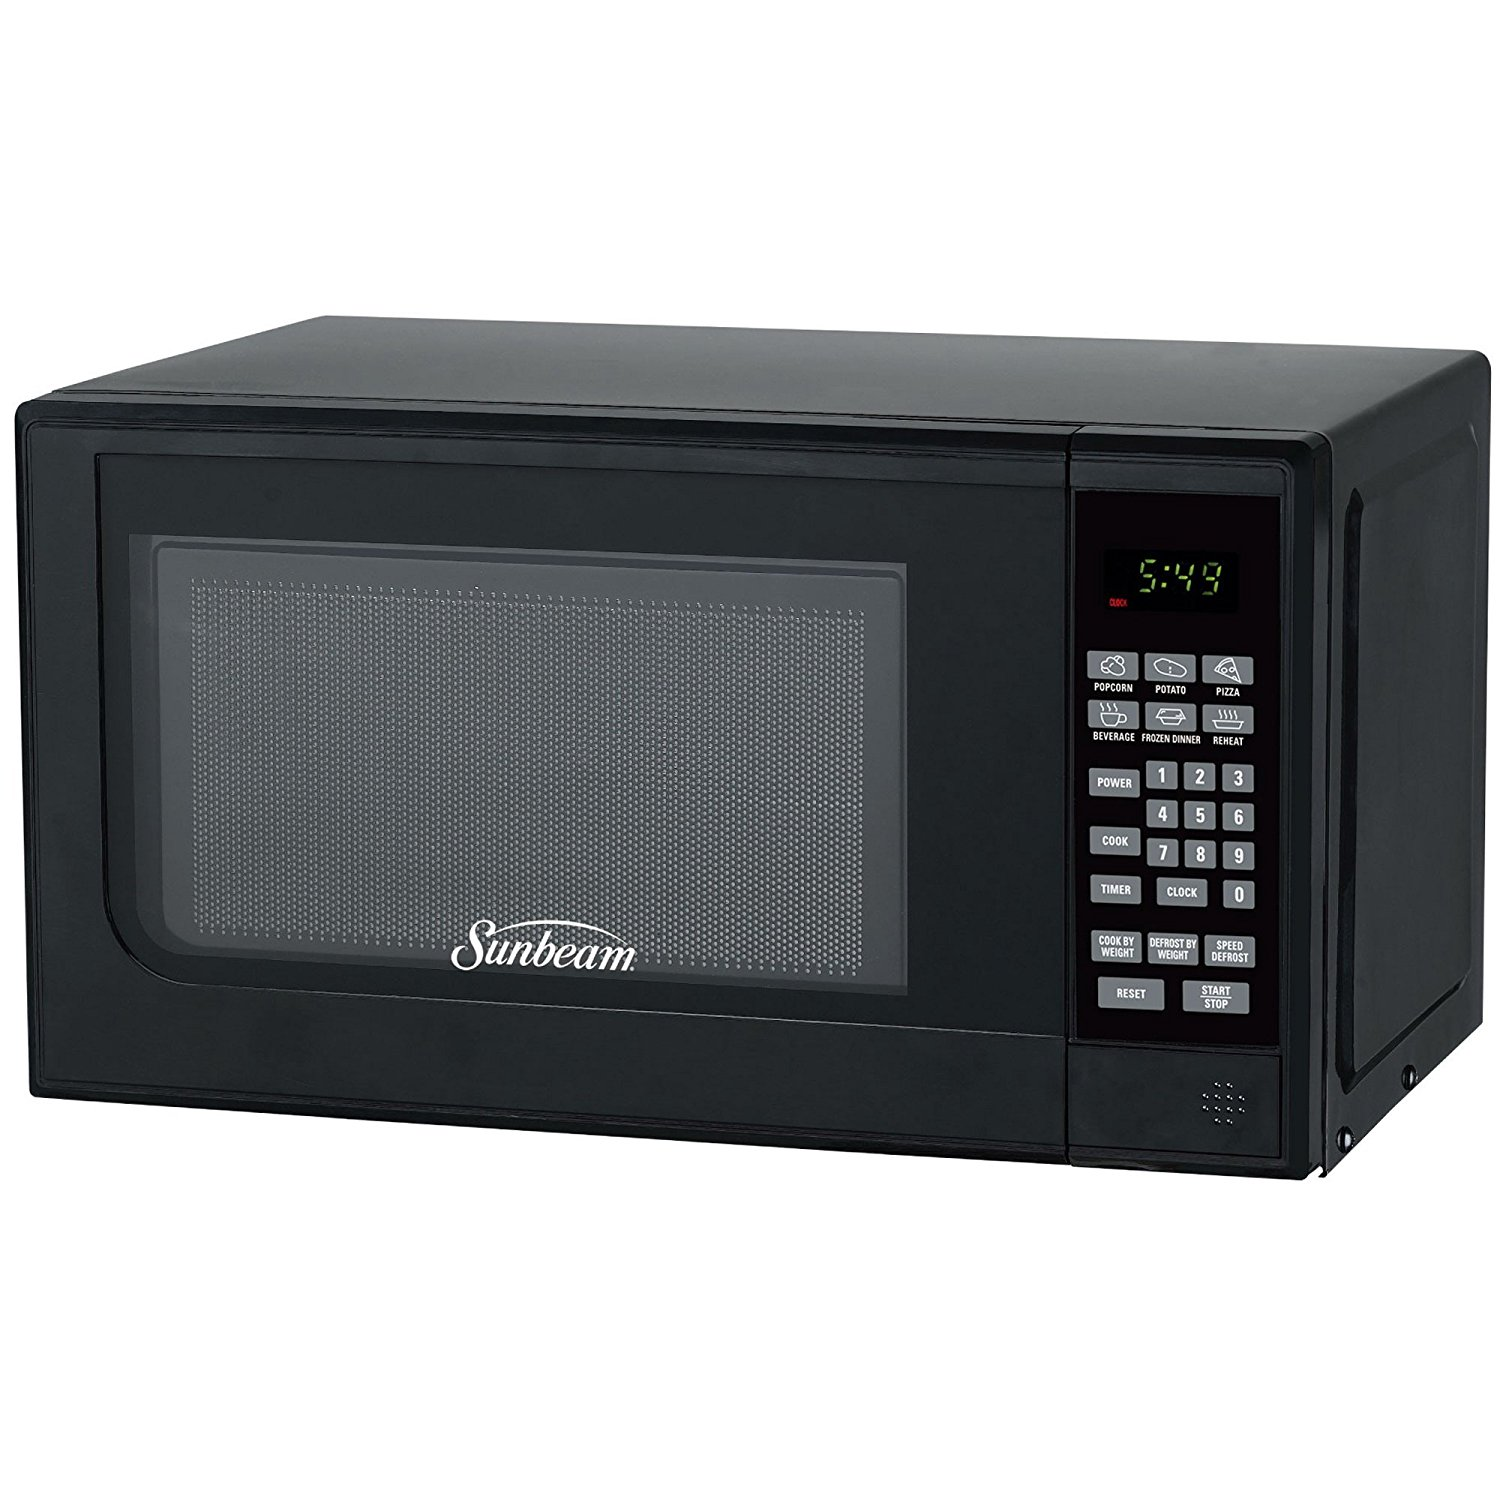 Oster 0.7 Cu Ft Countertop Microwave Sunbeam Sgc7702 7 Cu Ft 700 Watts Compact Digital